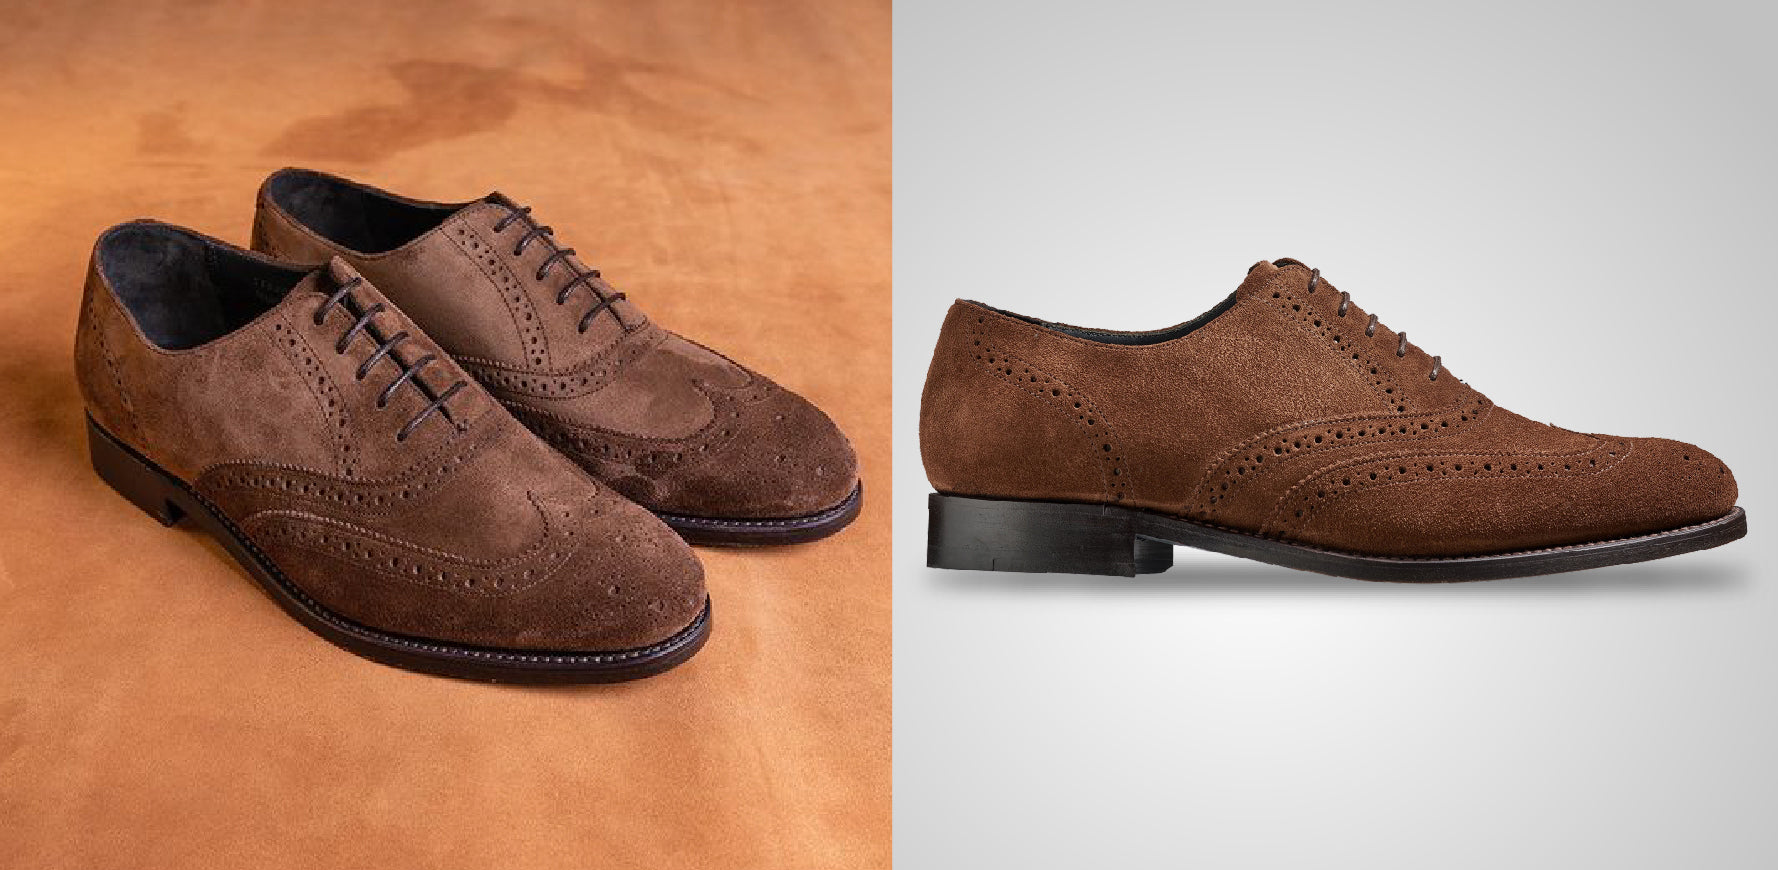 Chancery - Men's Tan Burnished Suede Oxford Brogue Shoe By Barker